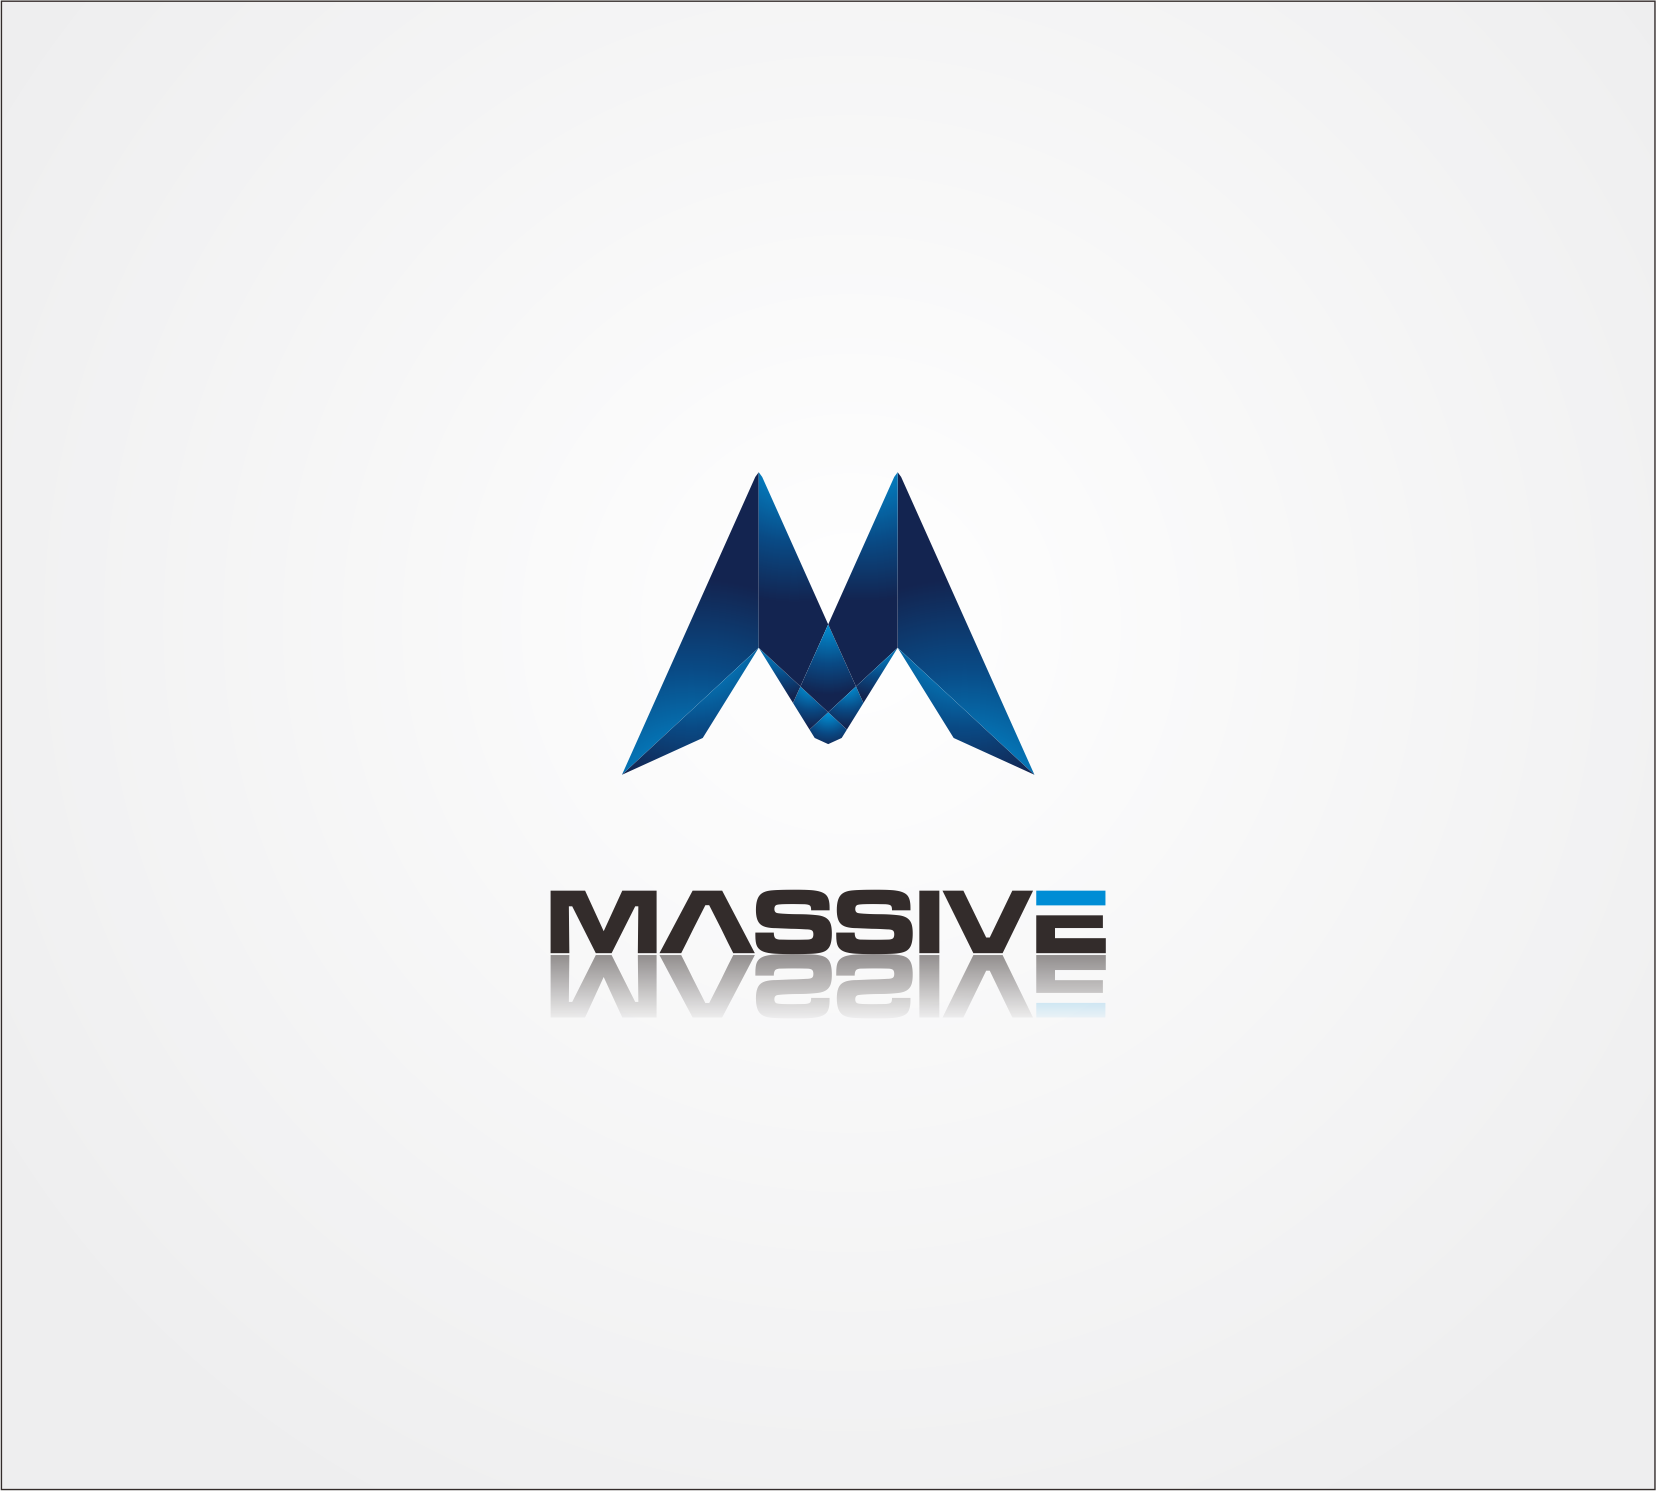 Logo Design by Red Zone - Entry No. 499 in the Logo Design Contest MASSIVE LOGO.